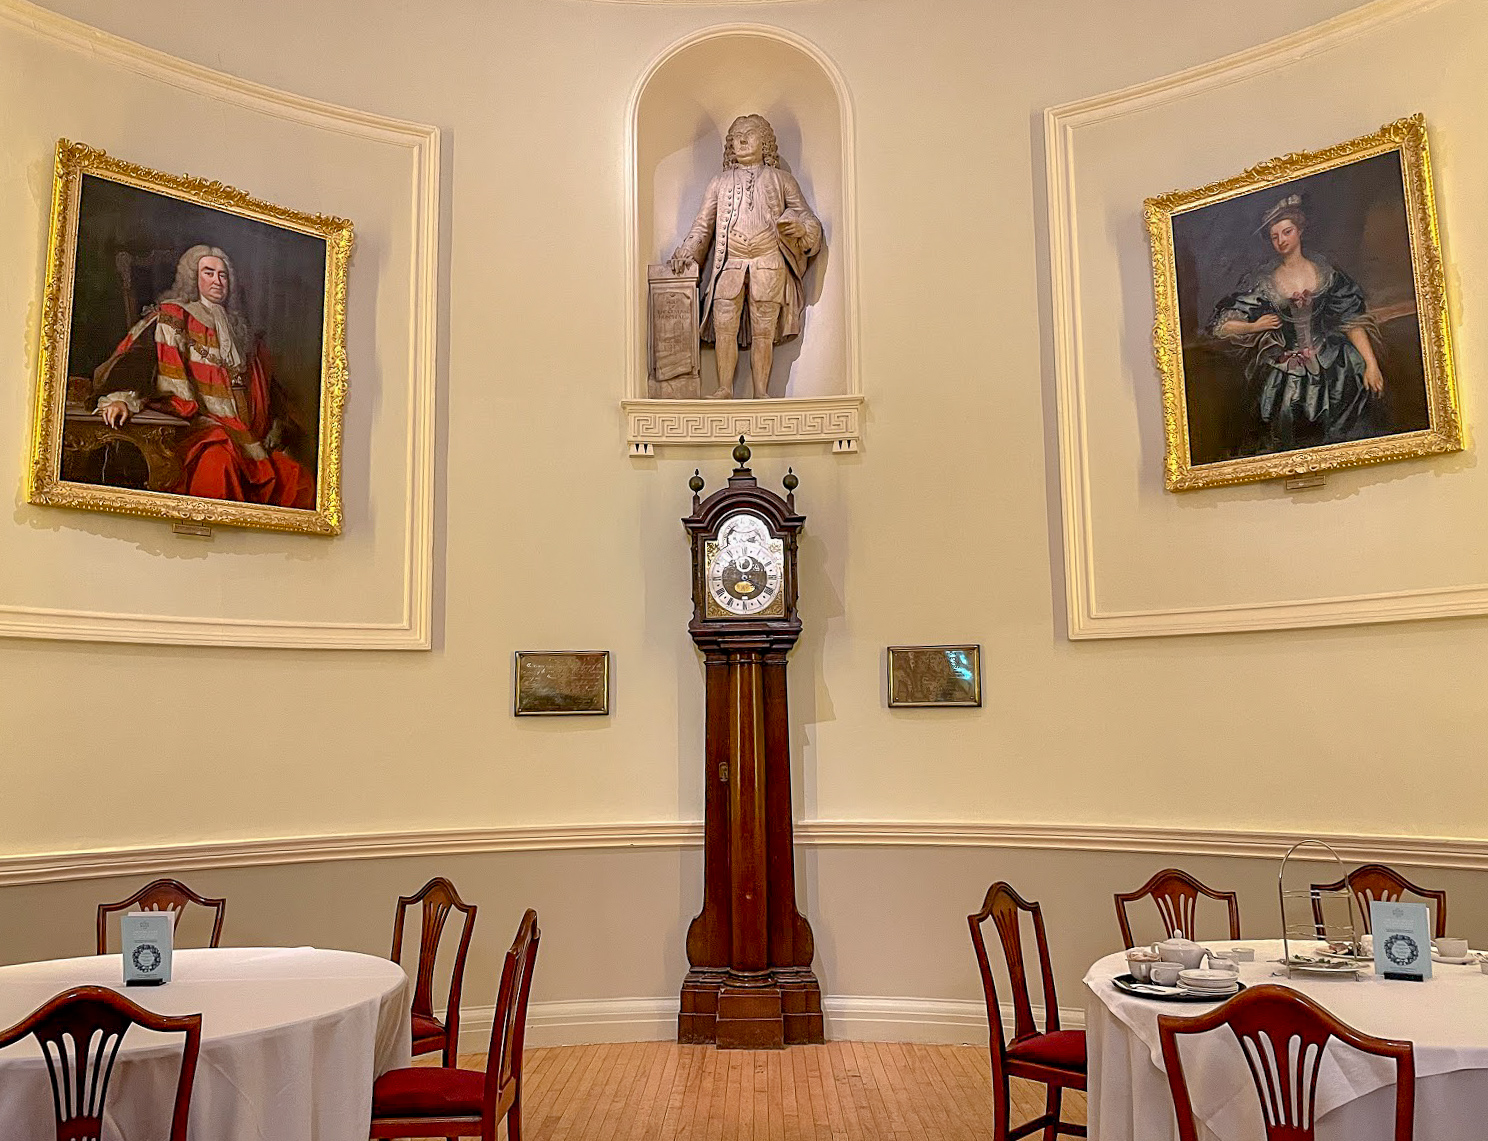 The Tompion clock in The Pump Room Bath